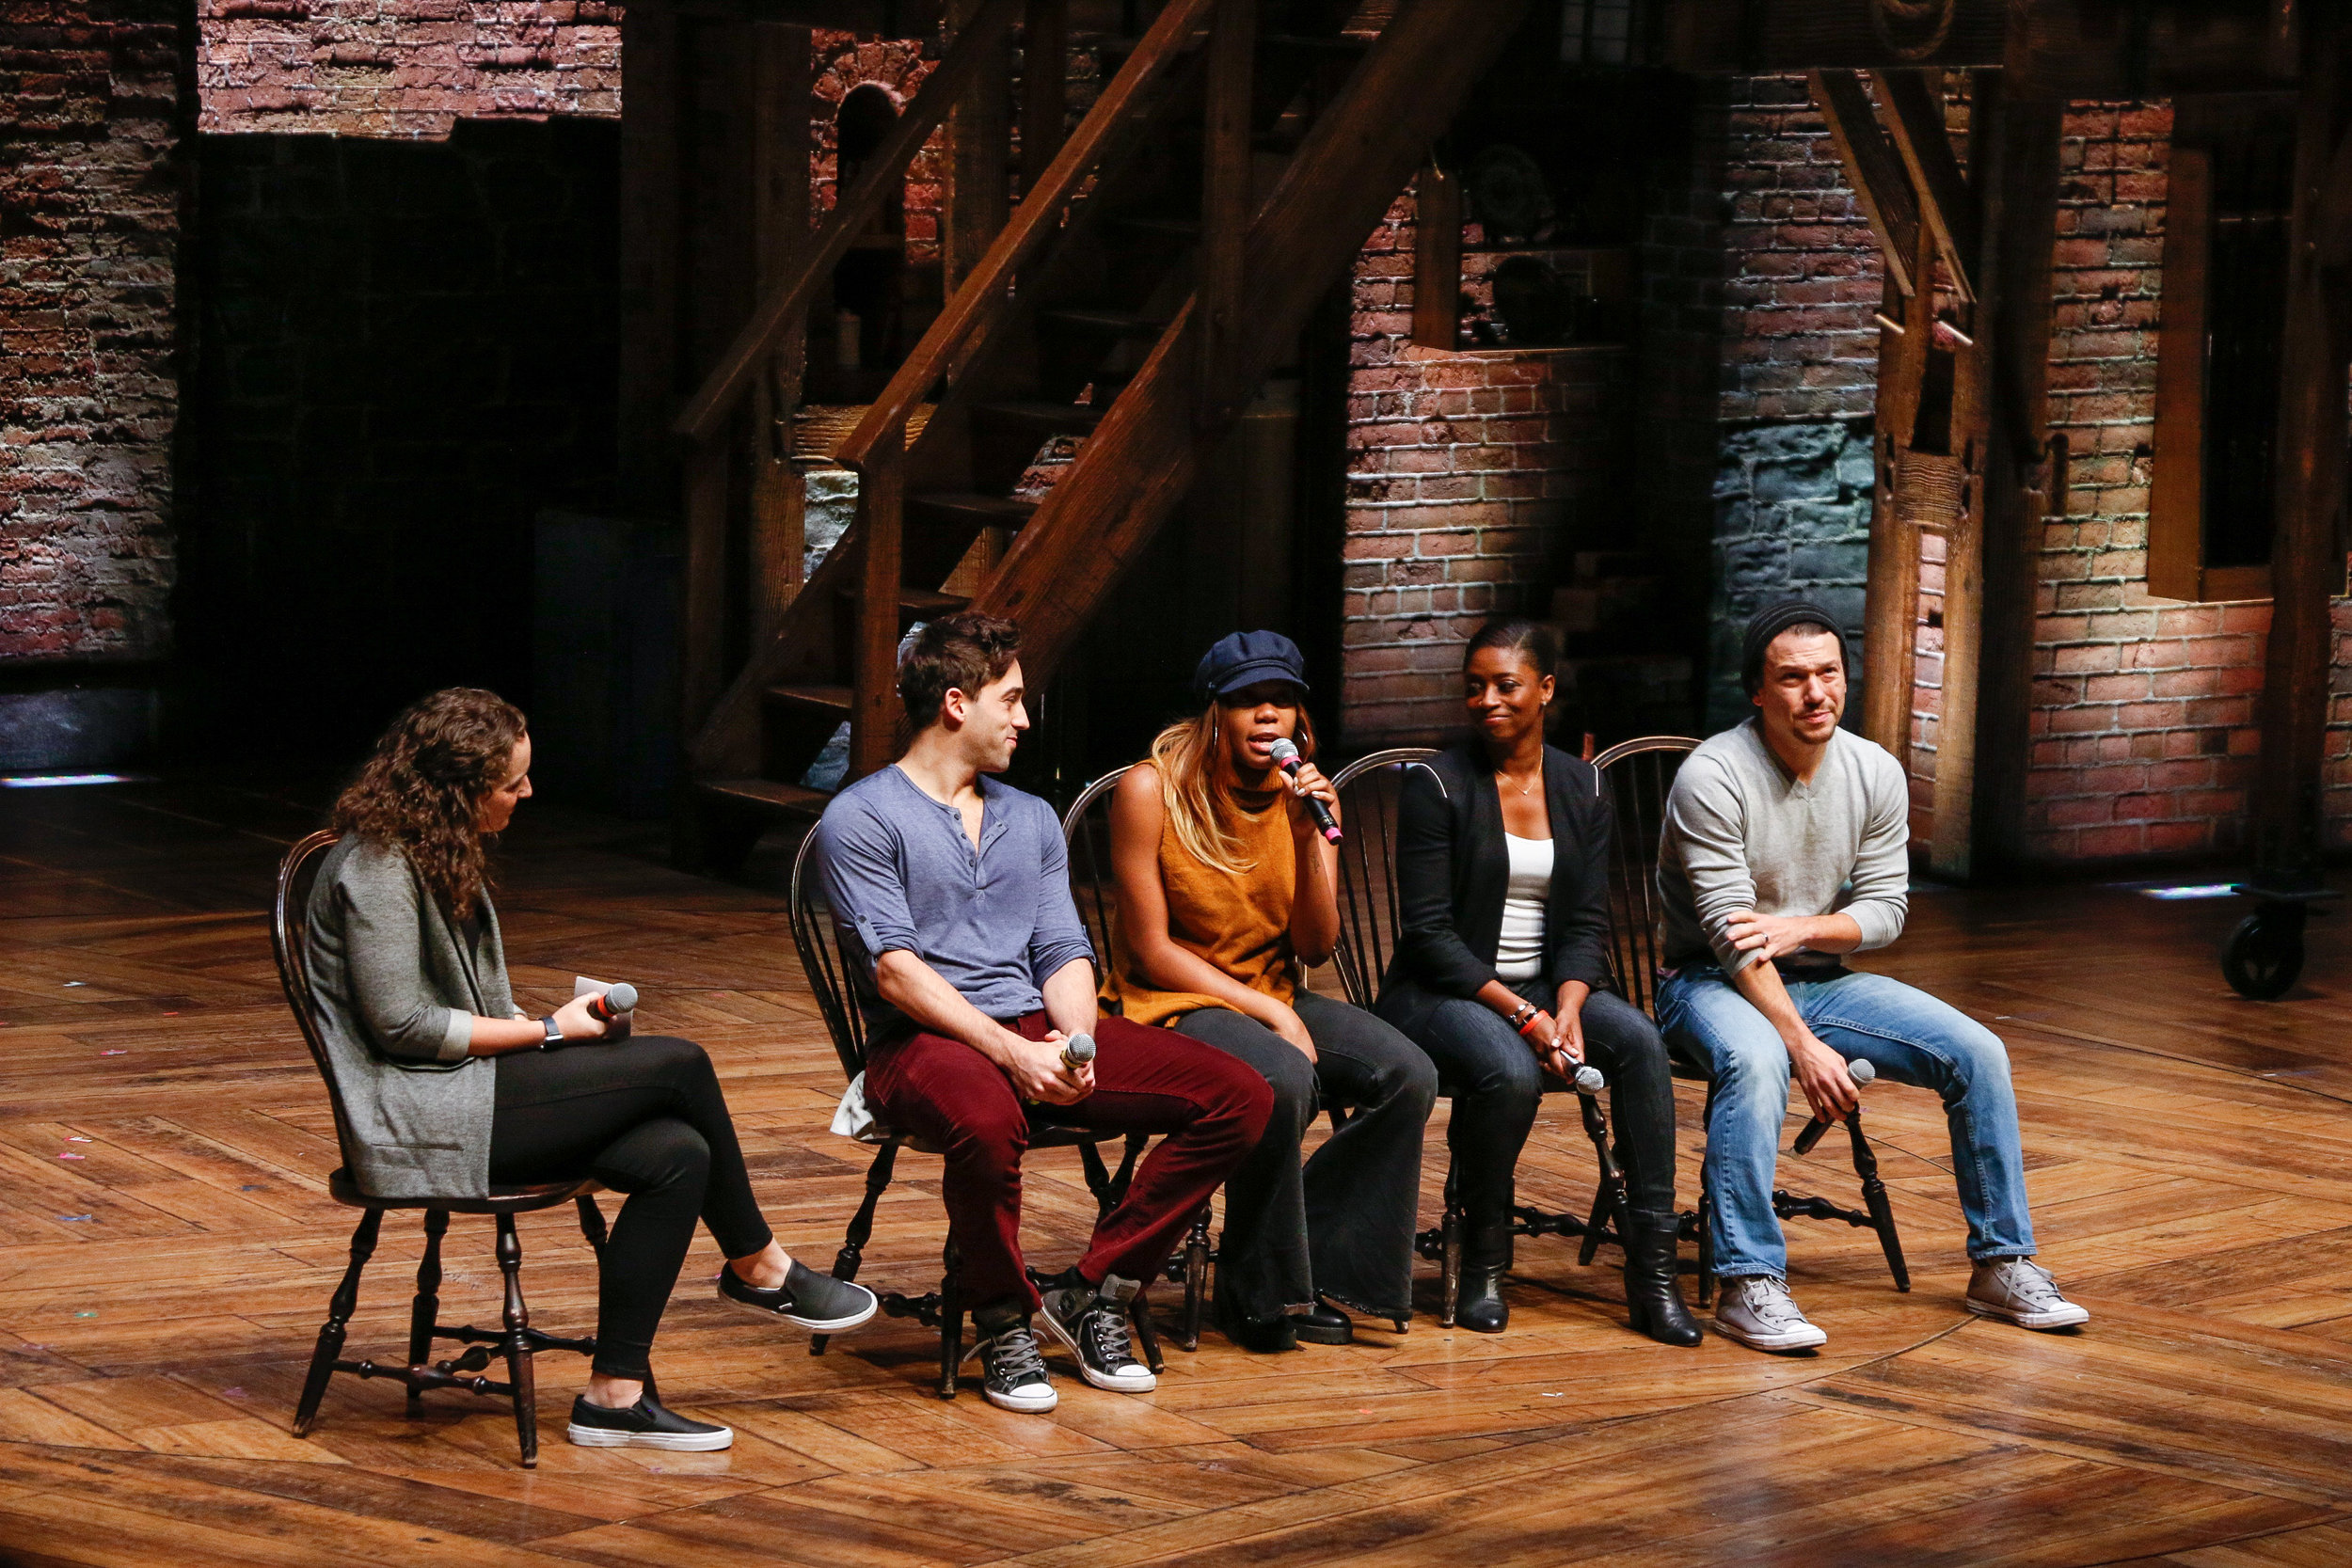 Members of the cast of Hamilton answer questions submitted by students in part of The Hamilton Education Program at CIBC Theatre. Photo by Mary Crylen.